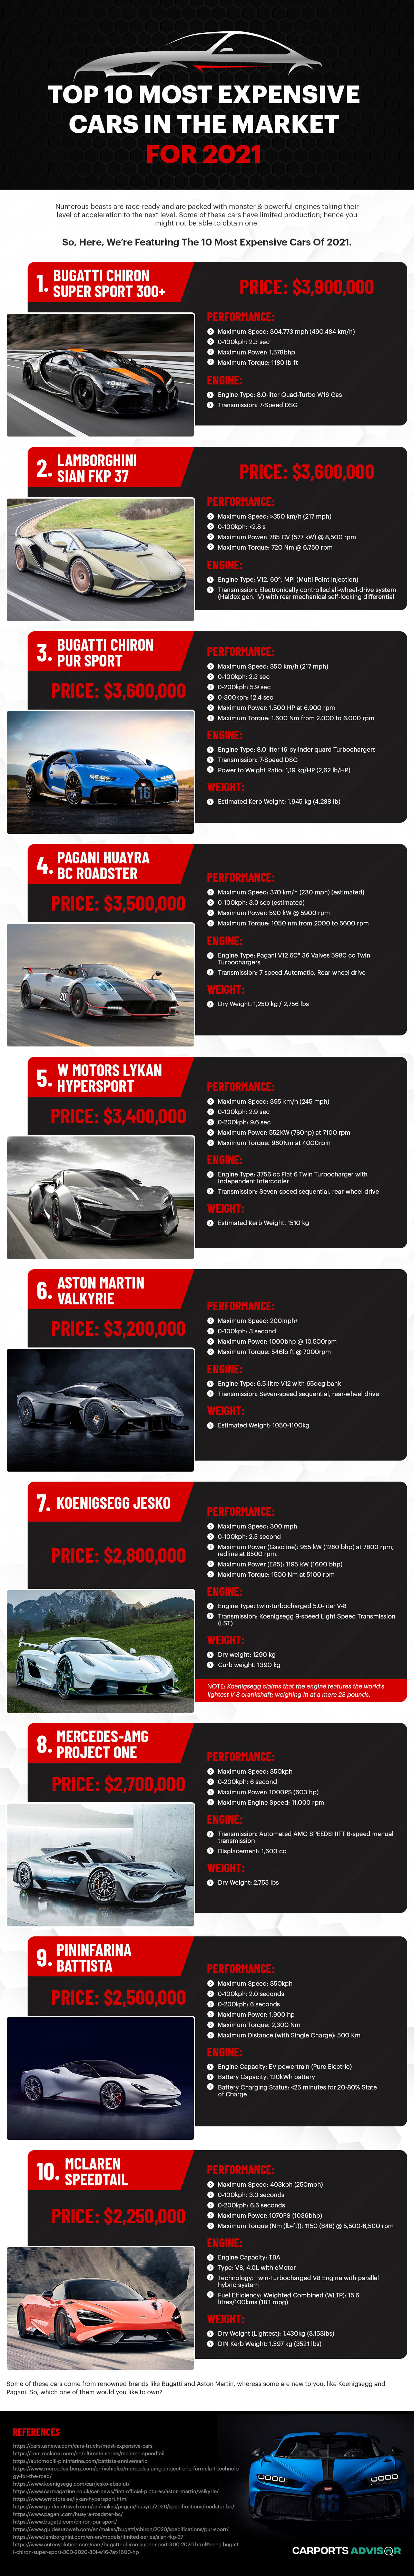 Top 10 Most Expensive Cars in the Market for 2021